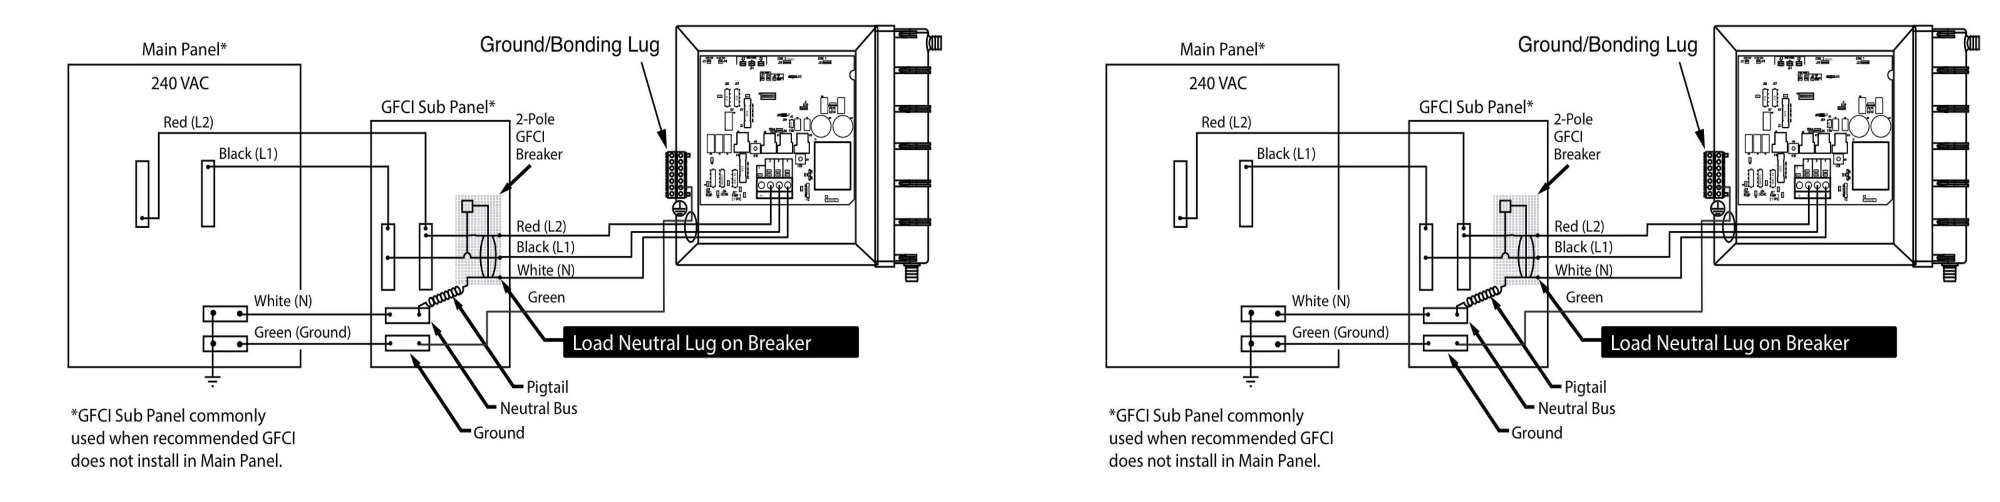 hight resolution of hot tub electrical preparation for your jacuzzi spa disconnect panel wiring diagram 15